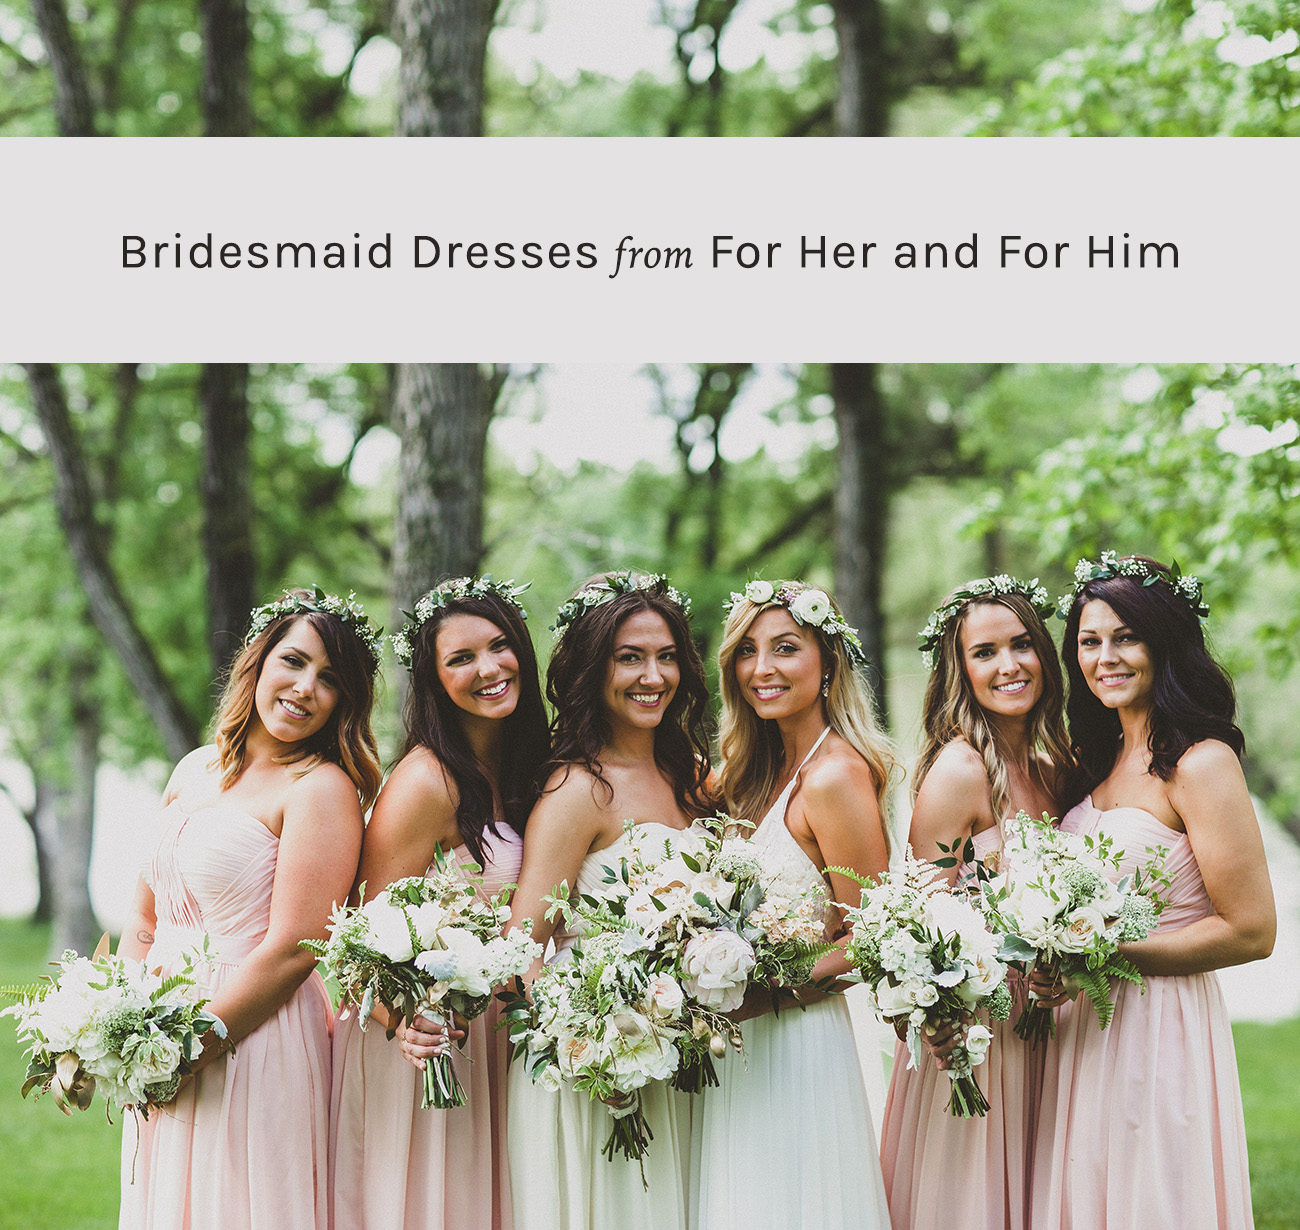 bridesmaid dresses from For Her and For Him